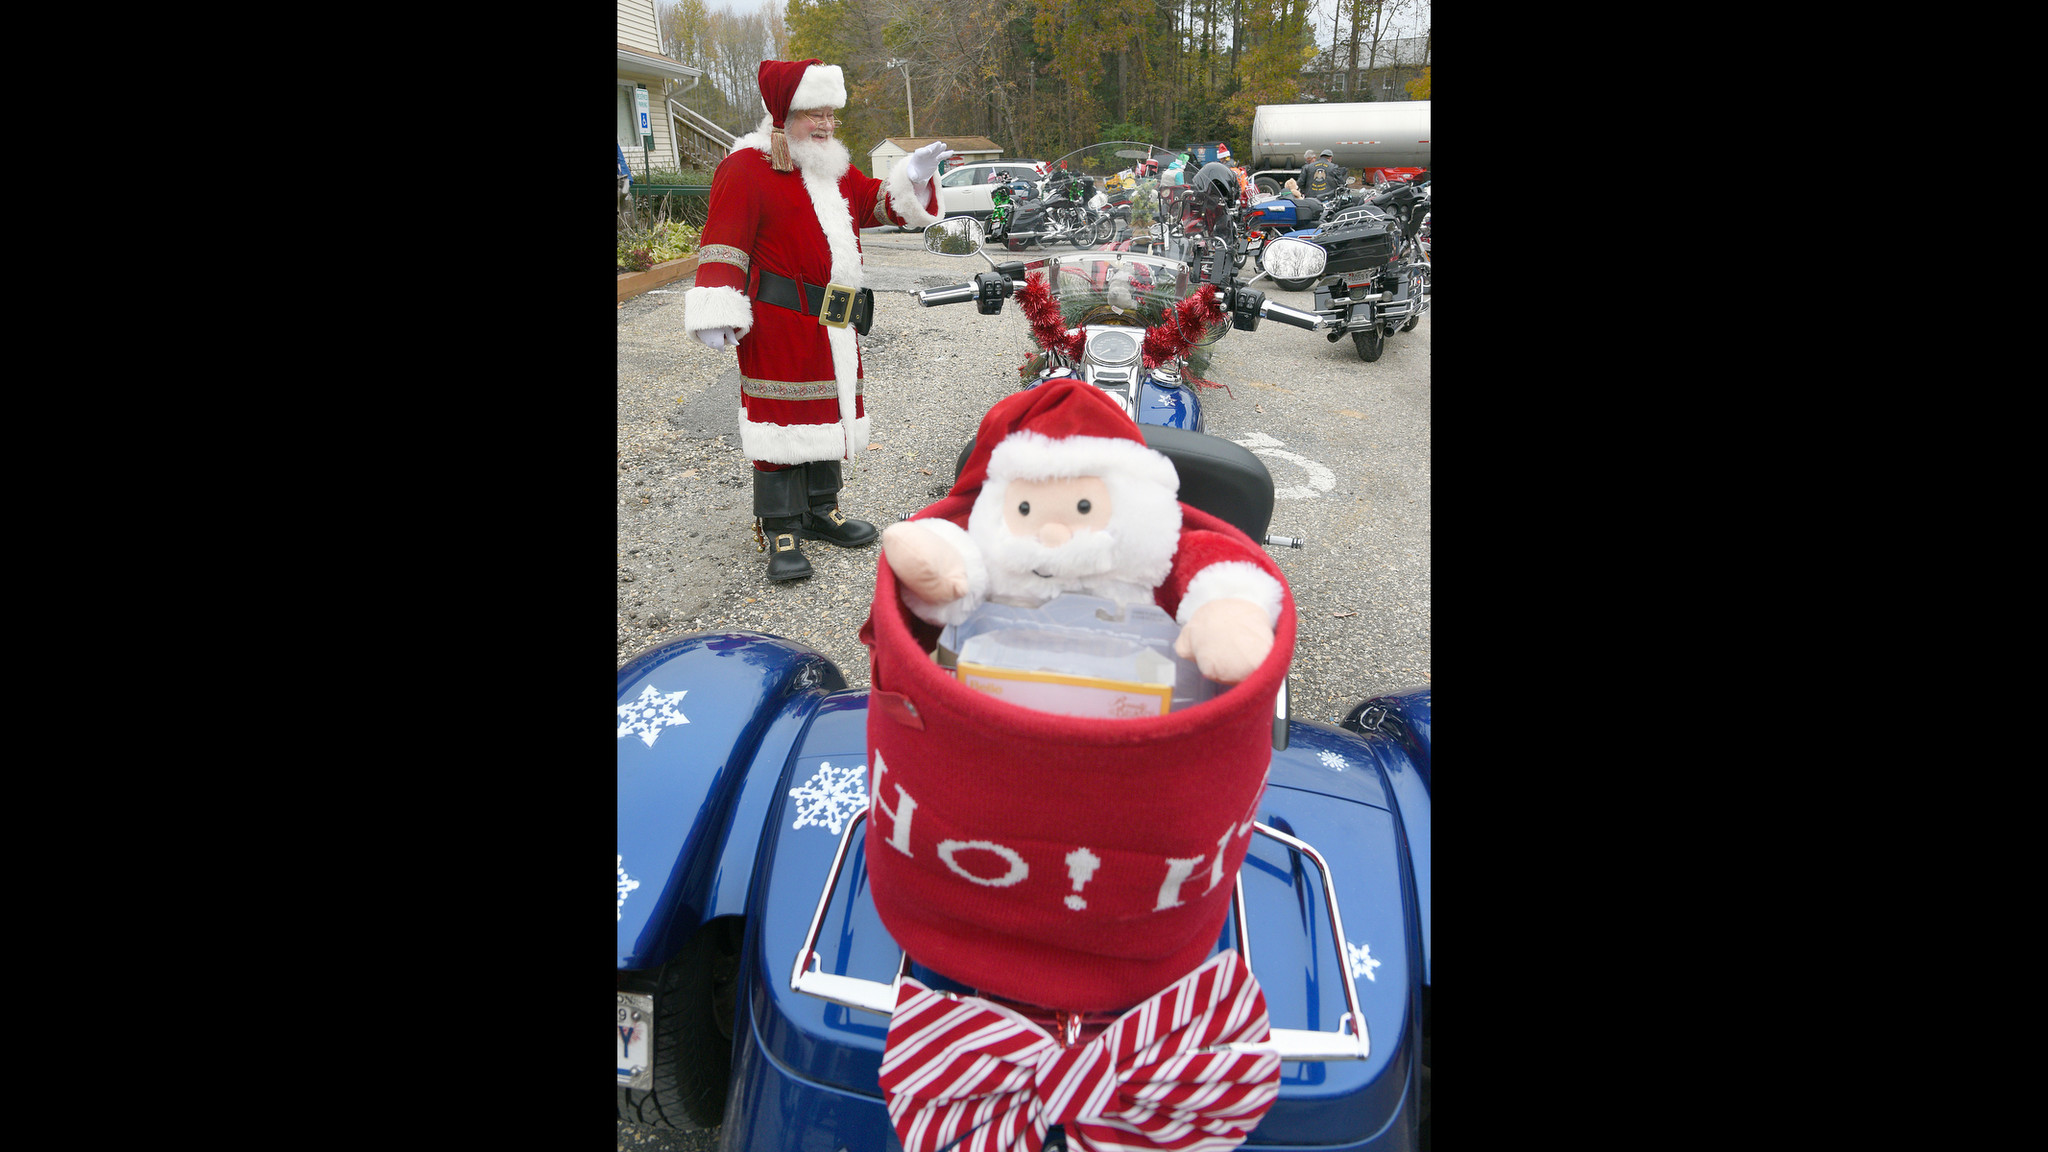 American Legion 2017 Toys For Tots : Toys for tots motorcycle parade baltimore sun